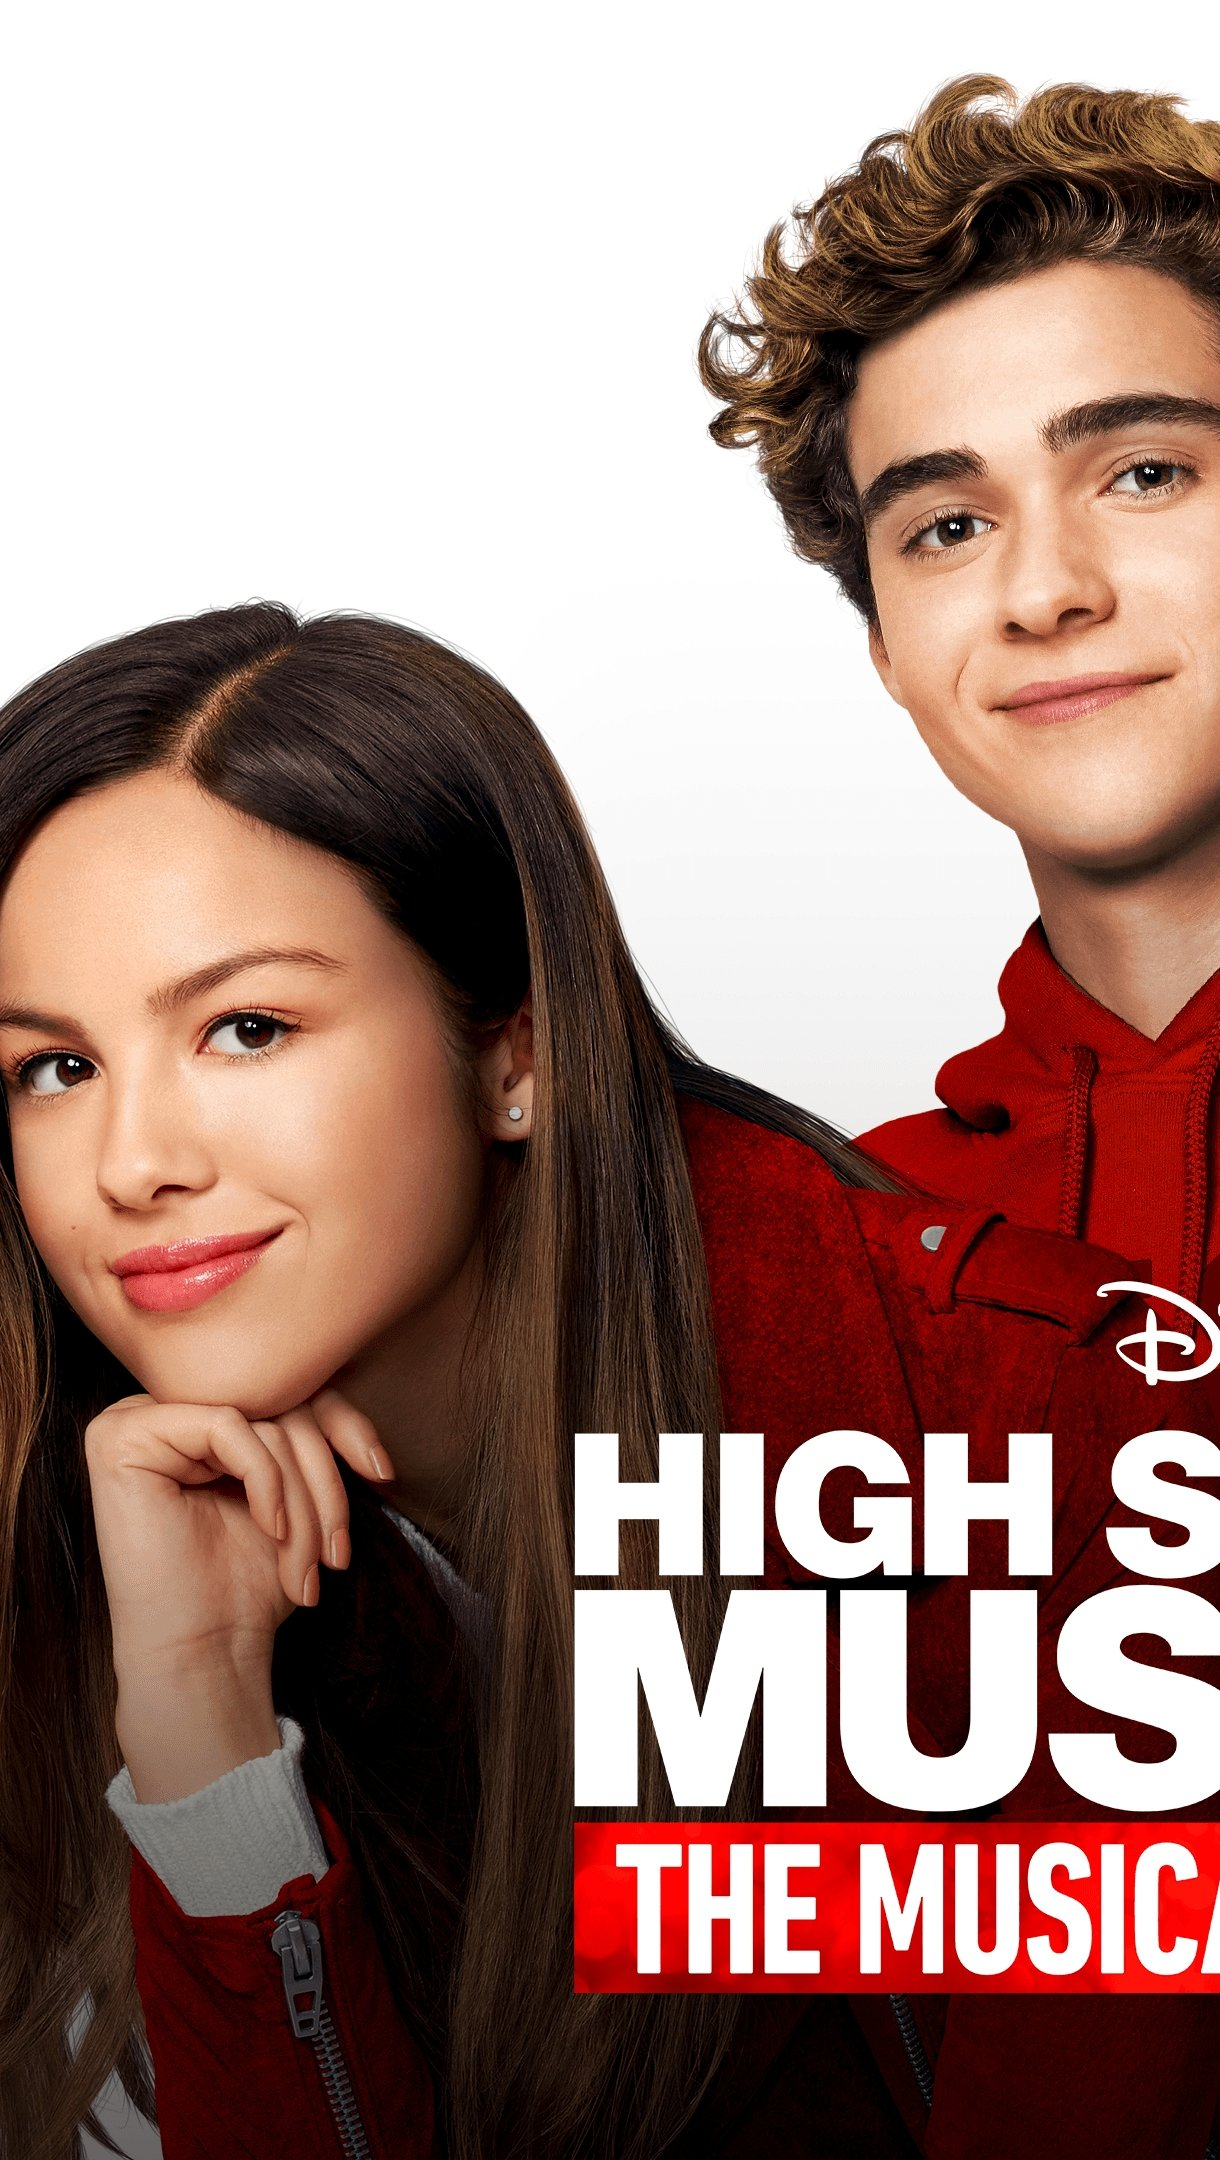 Fondos de pantalla High School musical The musical The series Vertical